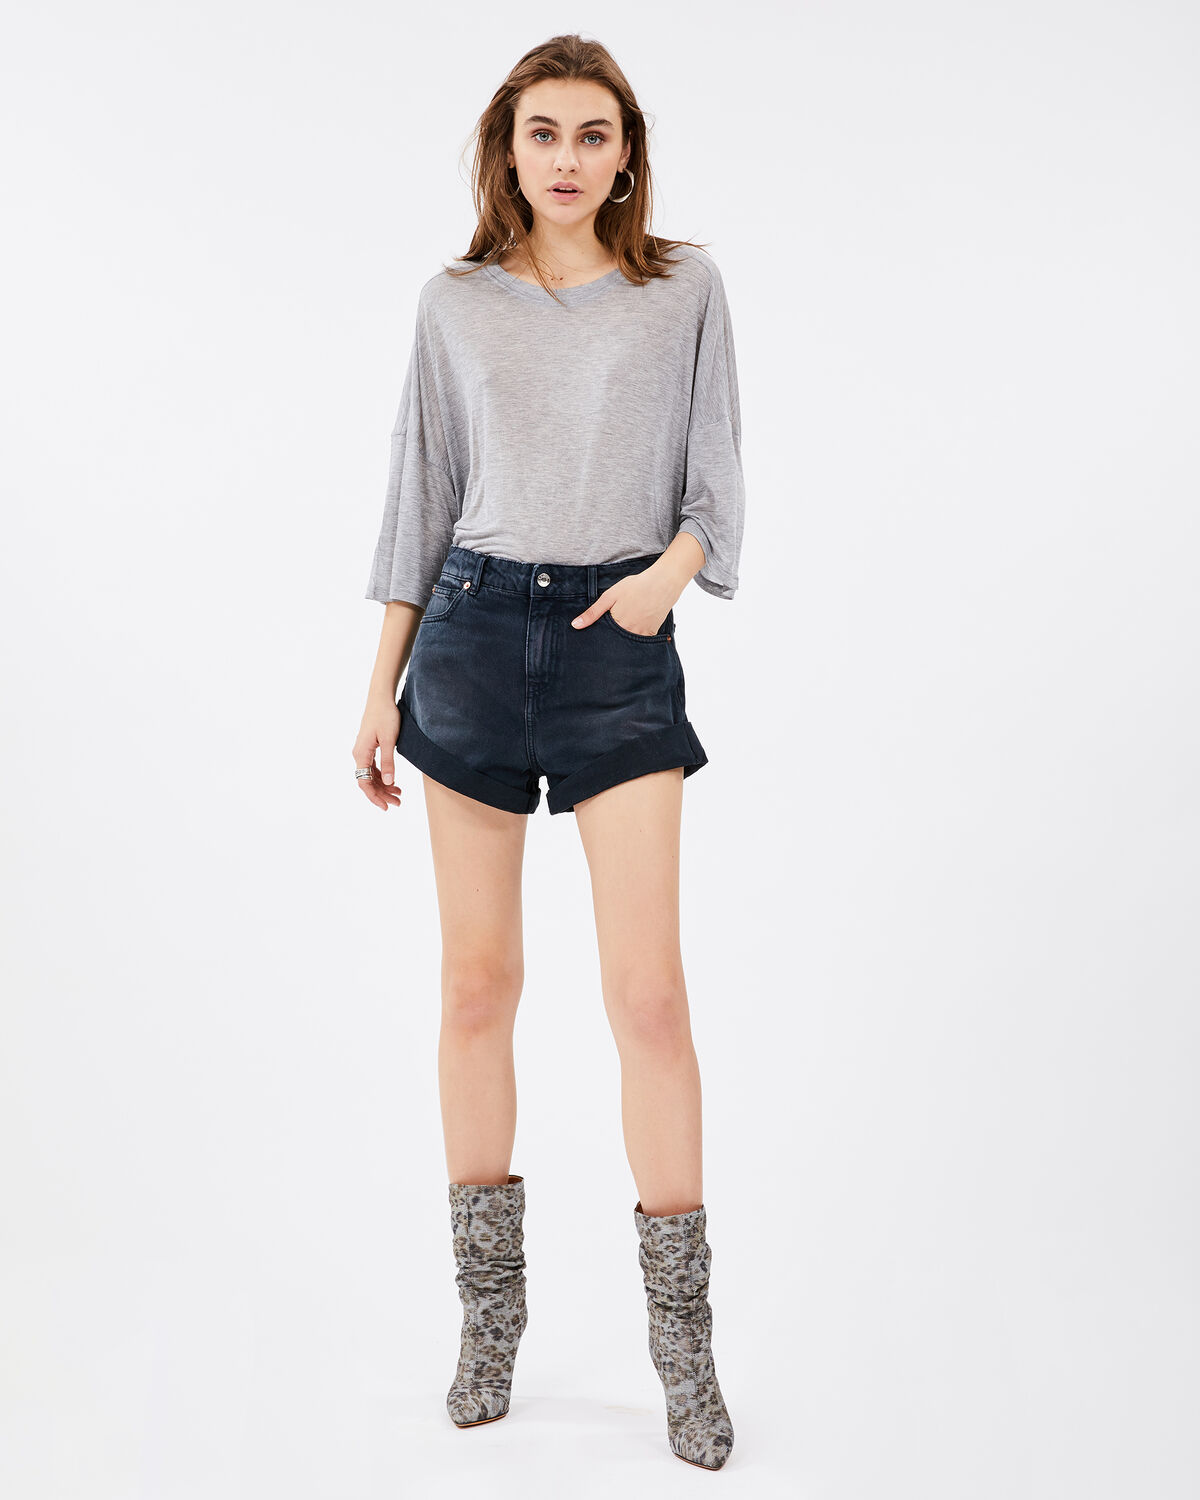 Sober T-Shirt Grey by IRO Paris